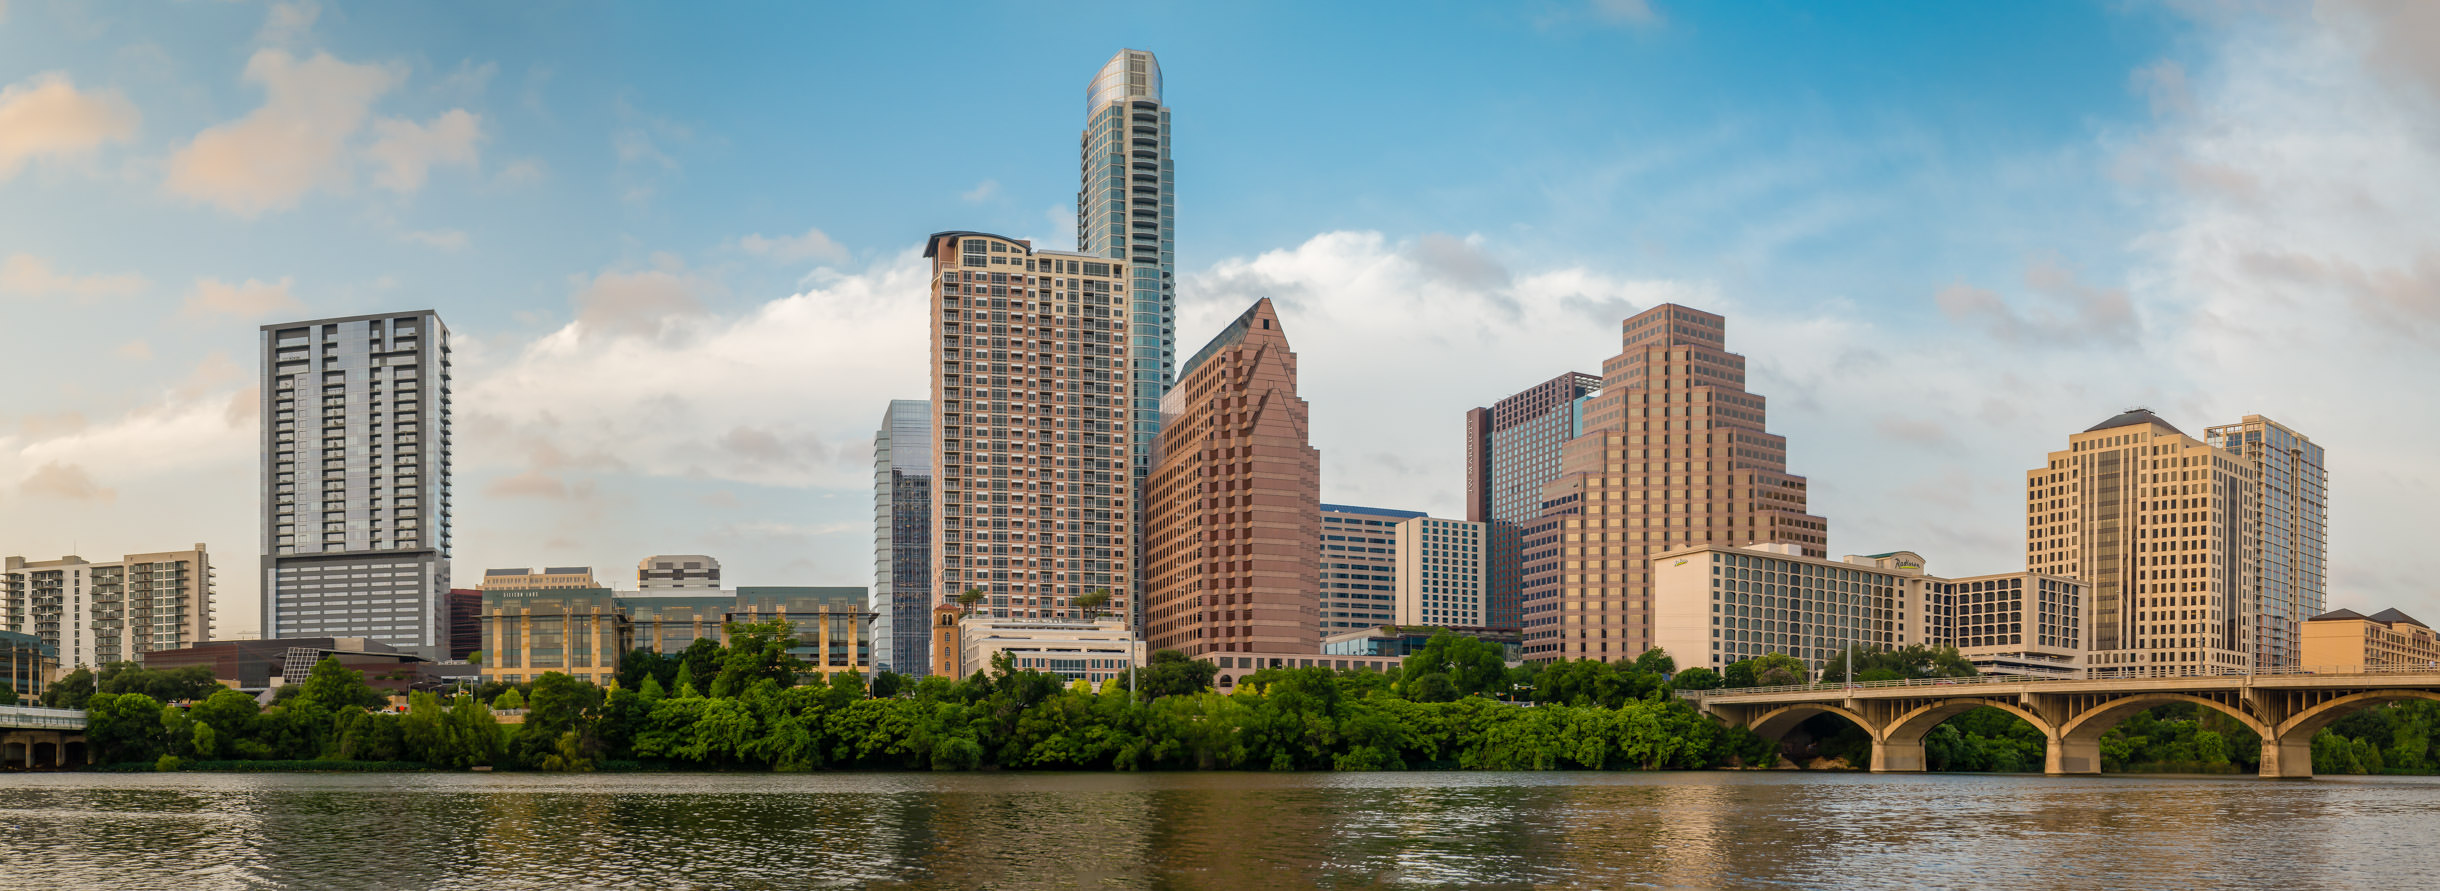 Austin, Texas' skyline along the north shore of Lady Bird Lake (formerly known as Town Lake). (Bonus: Click the photo for a larger view!)